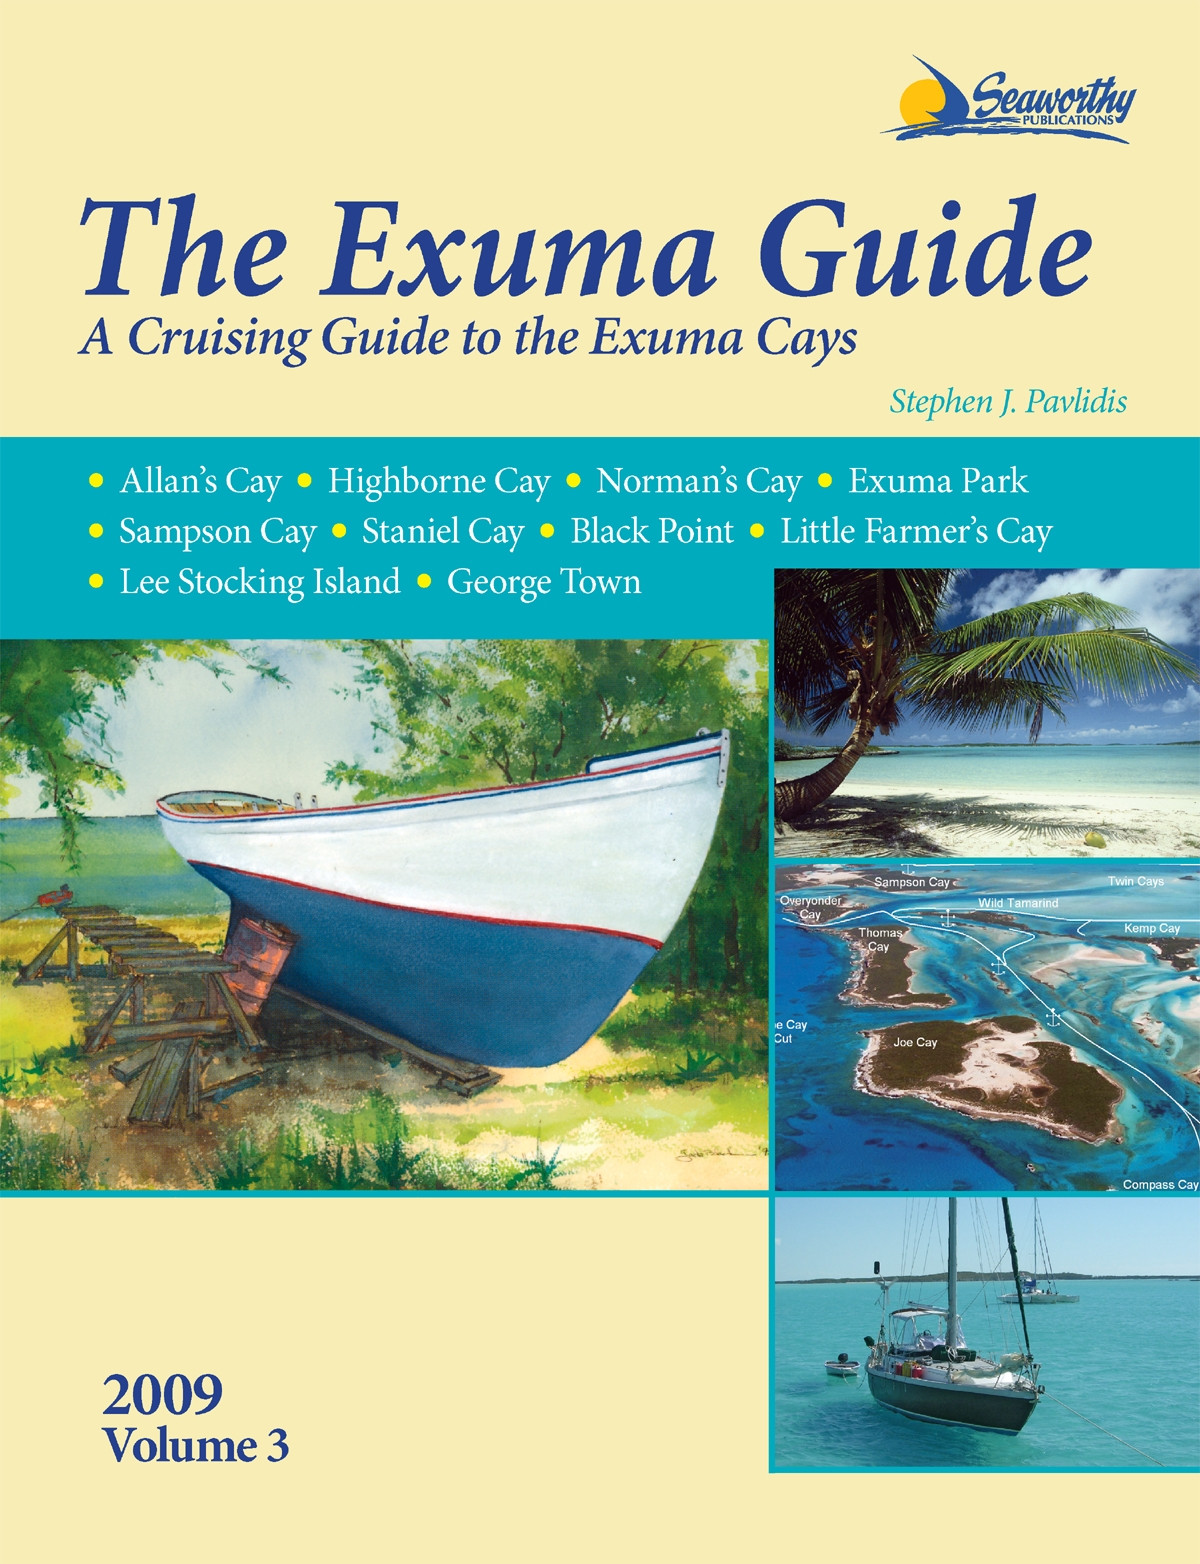 The Exuma Guide, 3rd Ed.